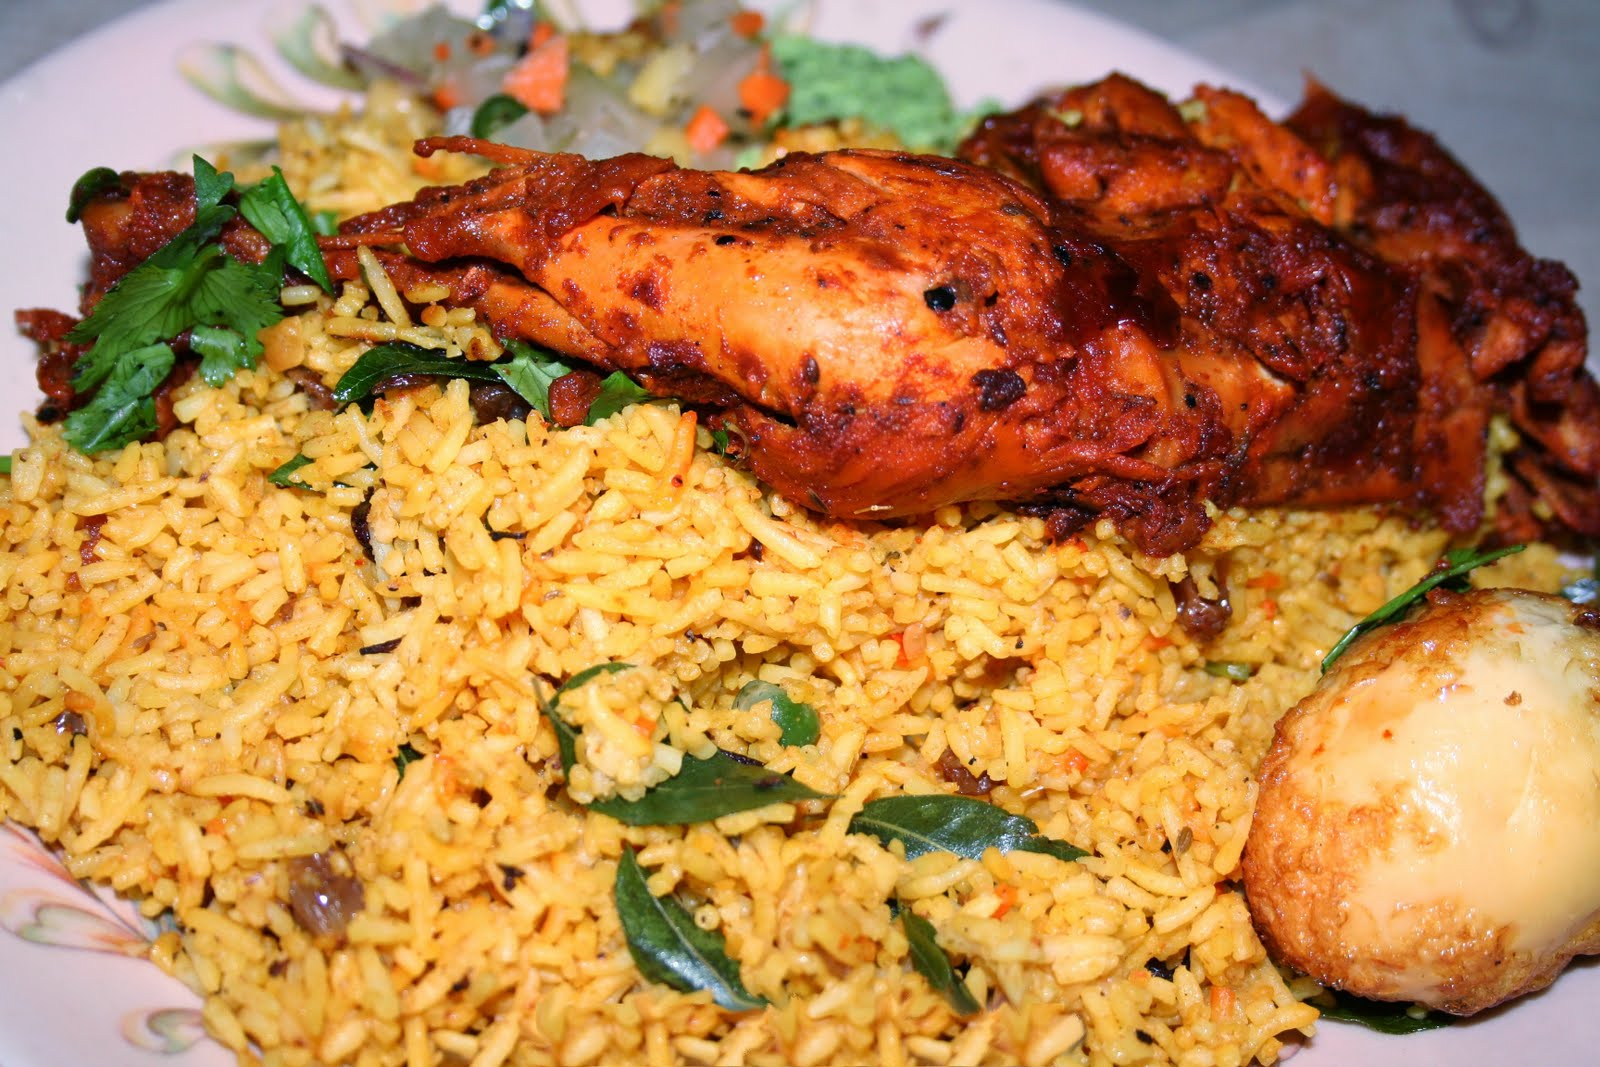 movies.mp3.songs: Hyderabad Chicken Biryani Cooking videos and recipes